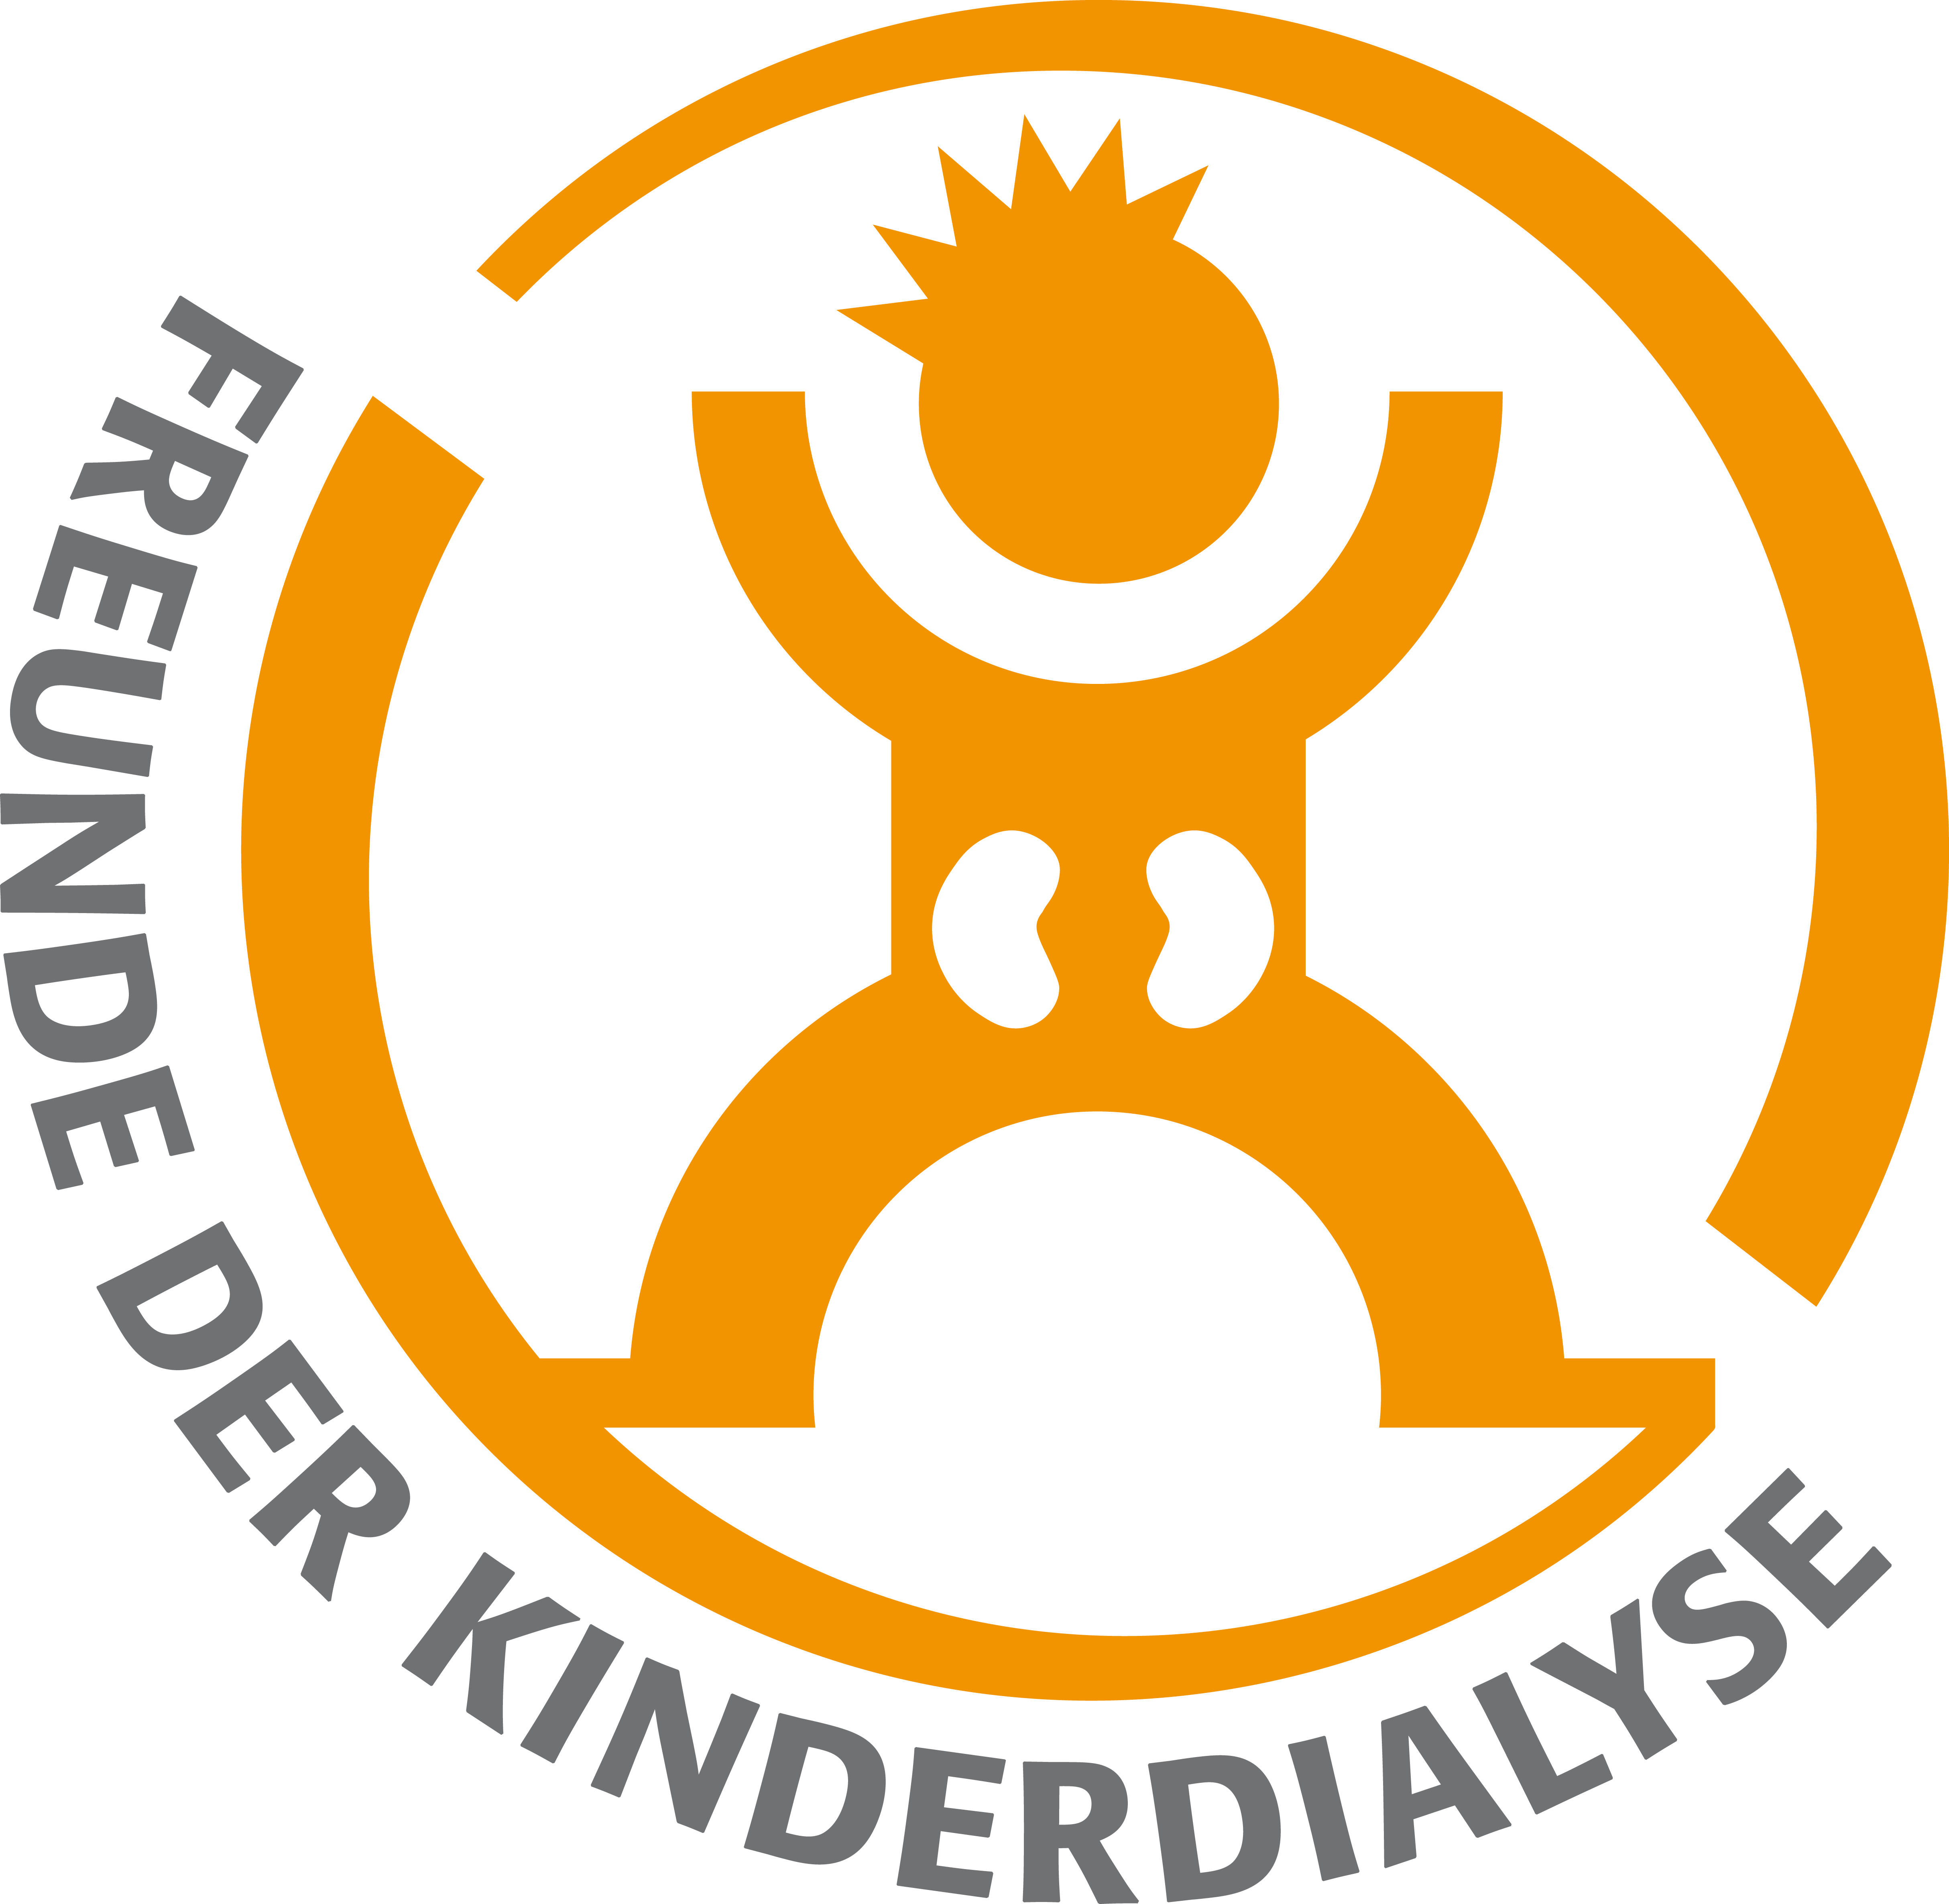 freundederkinderdialyse.at